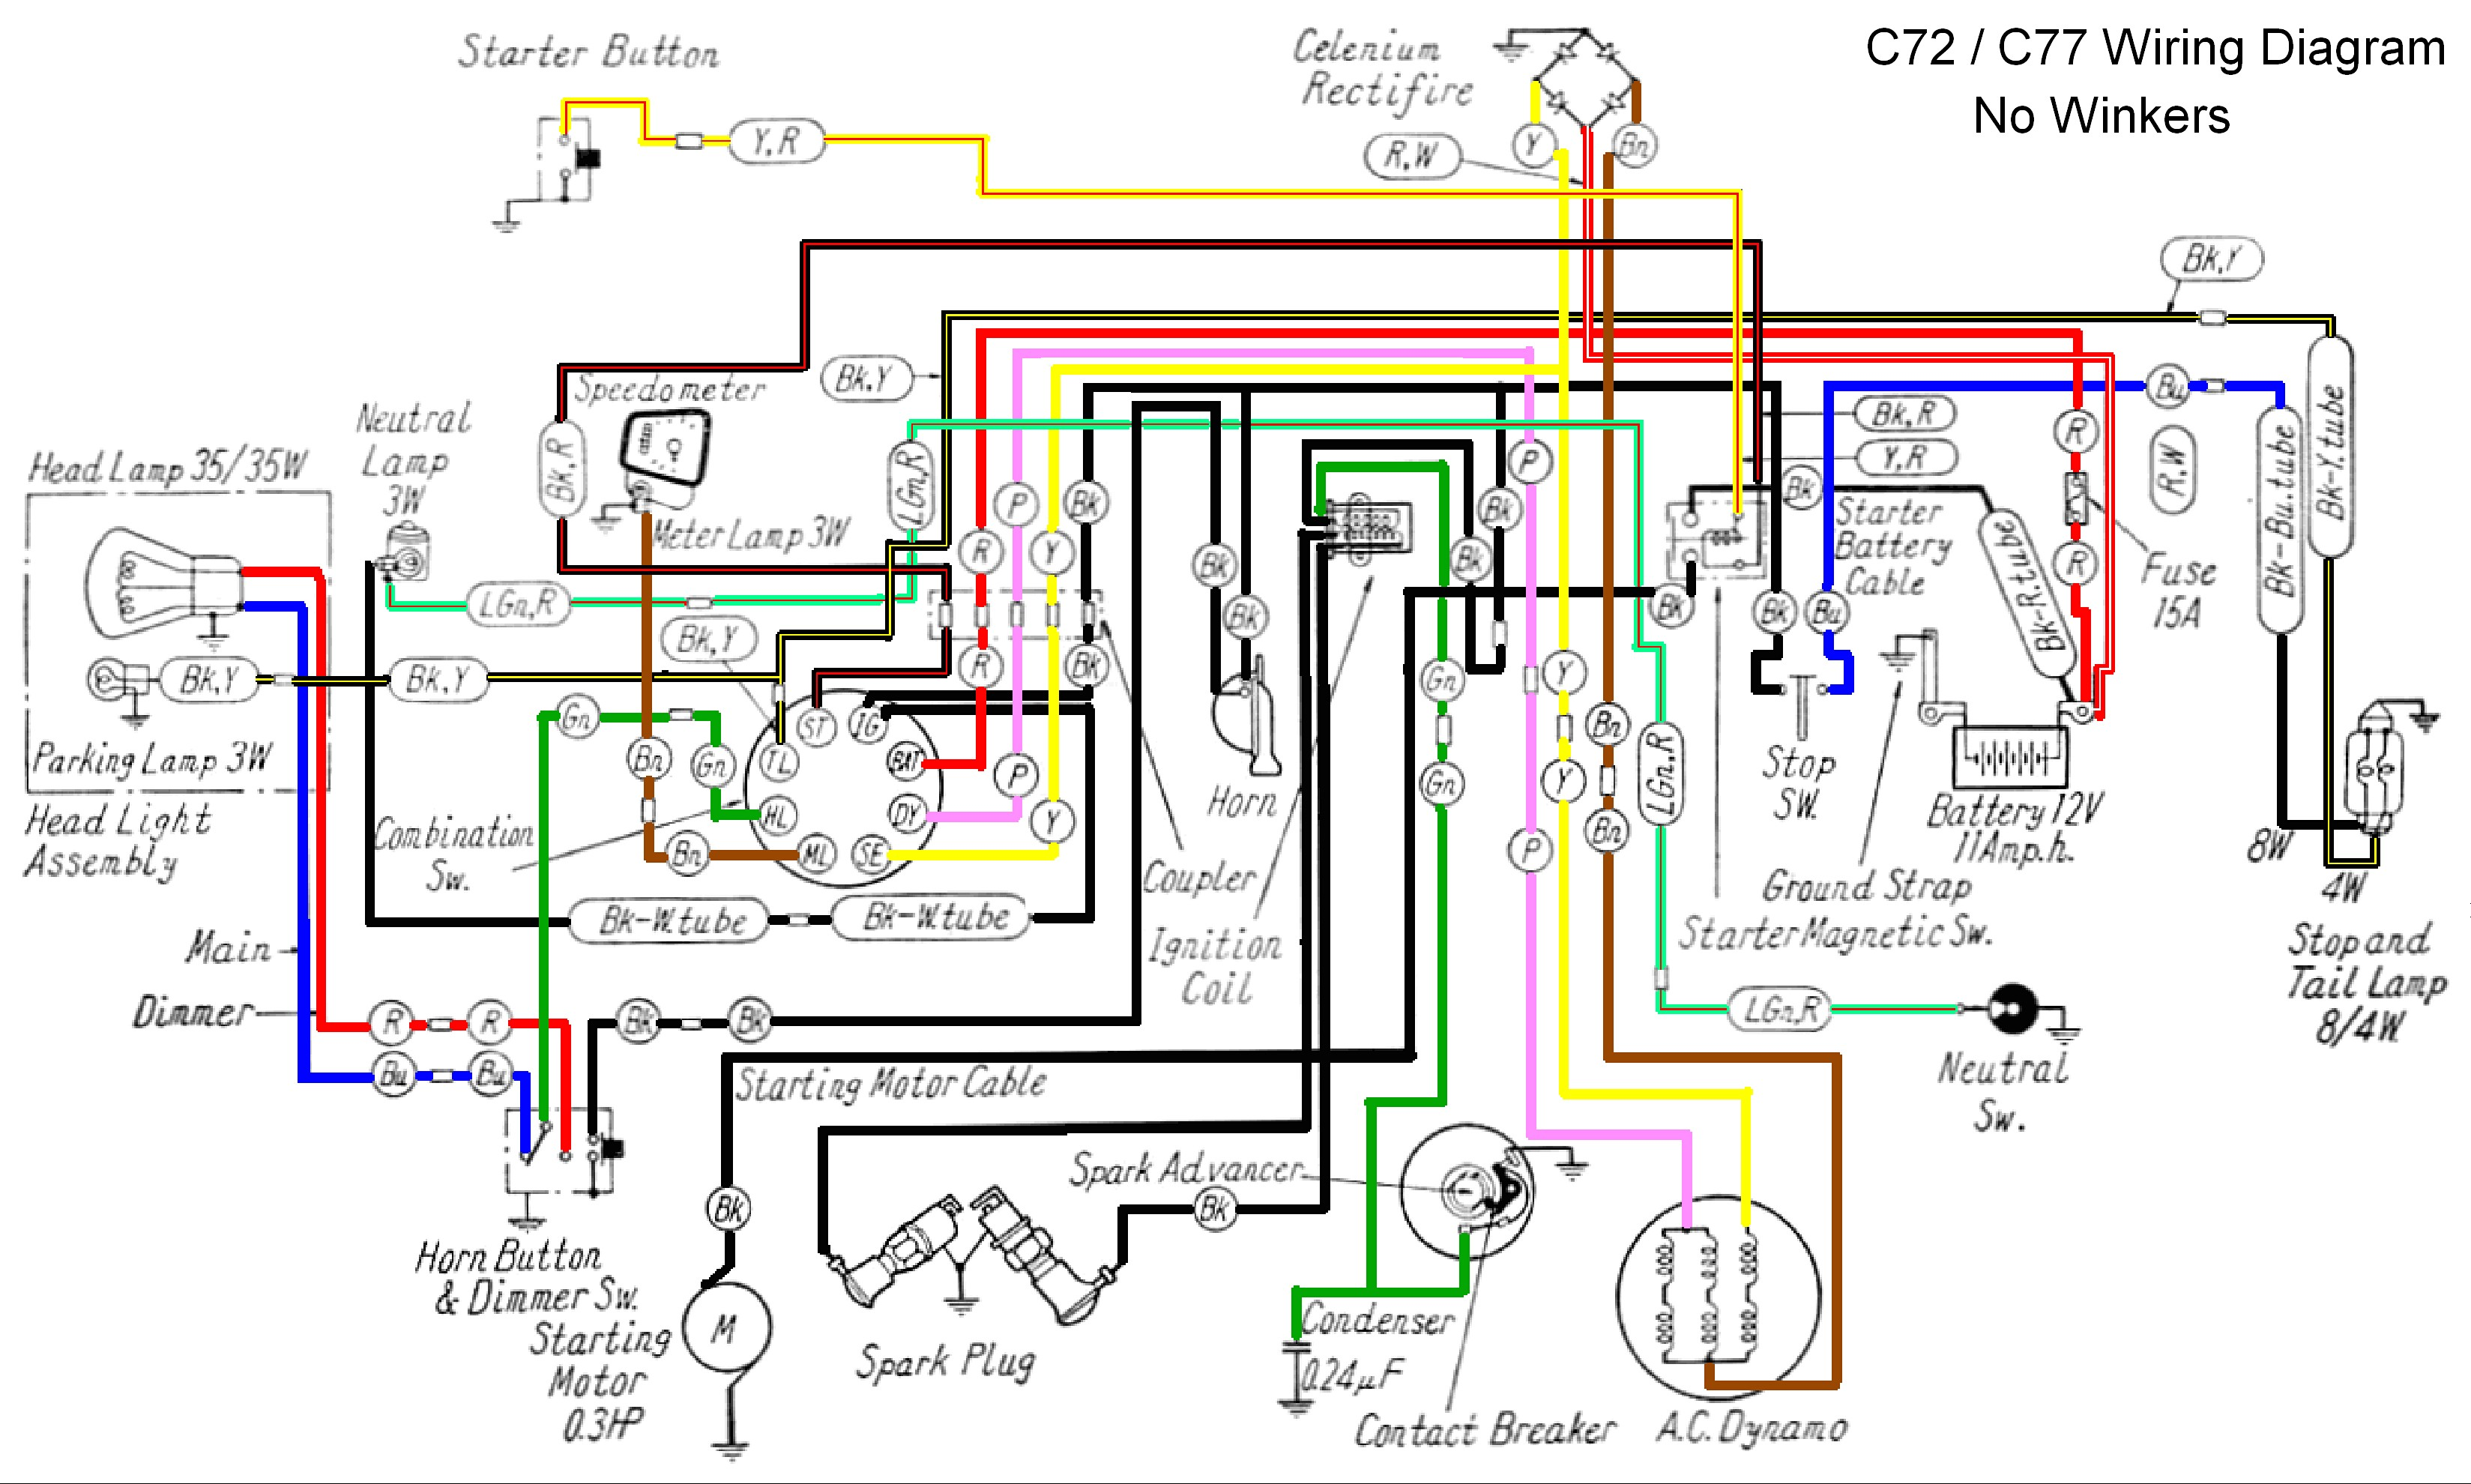 basic chopper wiring diagram explained wiring diagrams 1982 yamaha 750 virago wiring diagram suzuki chopper [ 3297 x 1980 Pixel ]